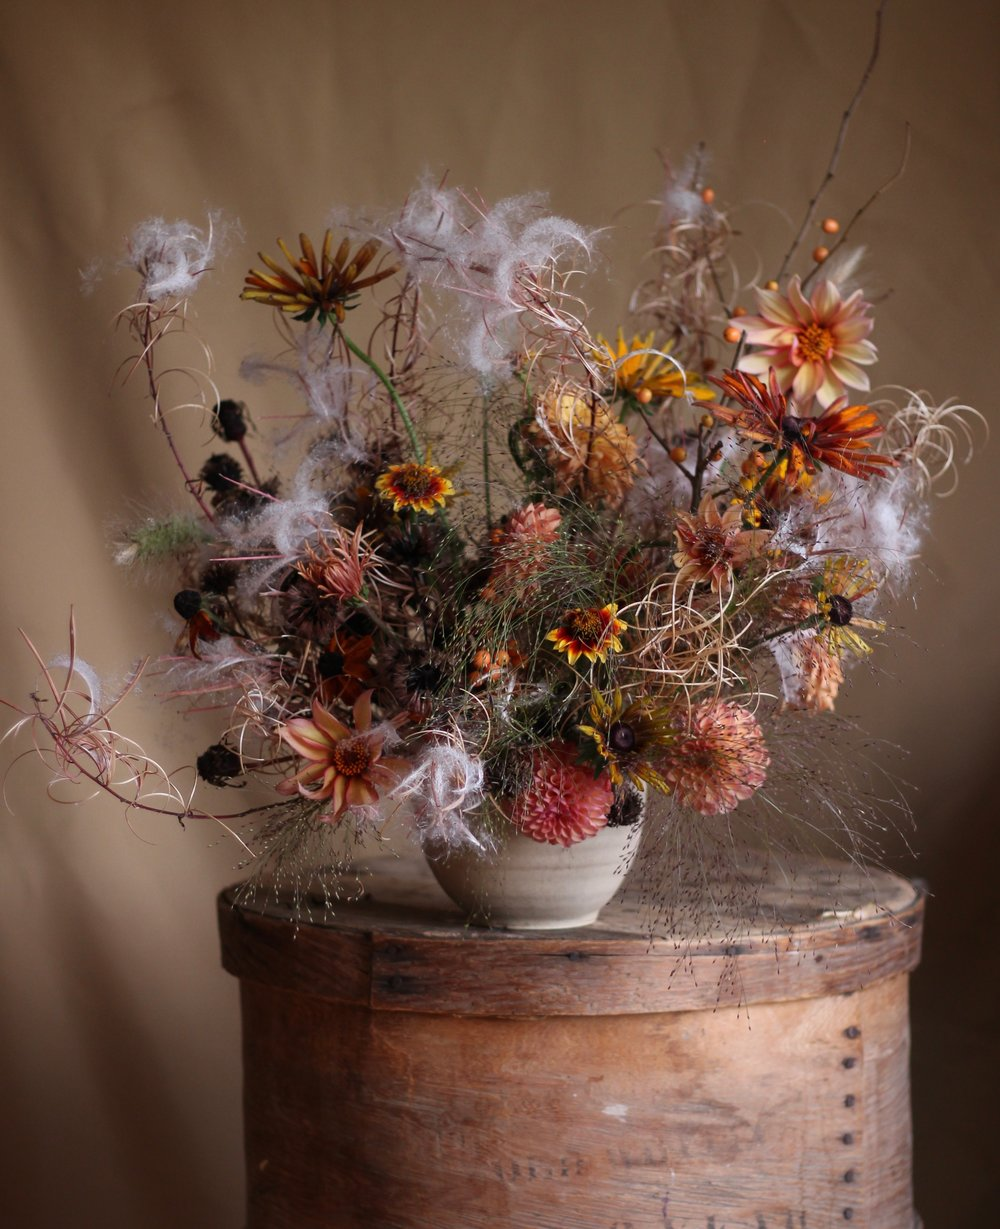 The seed heads of the BC native Chamerion angustifolium with Frosted Explosion grass and October's flowers from the garden